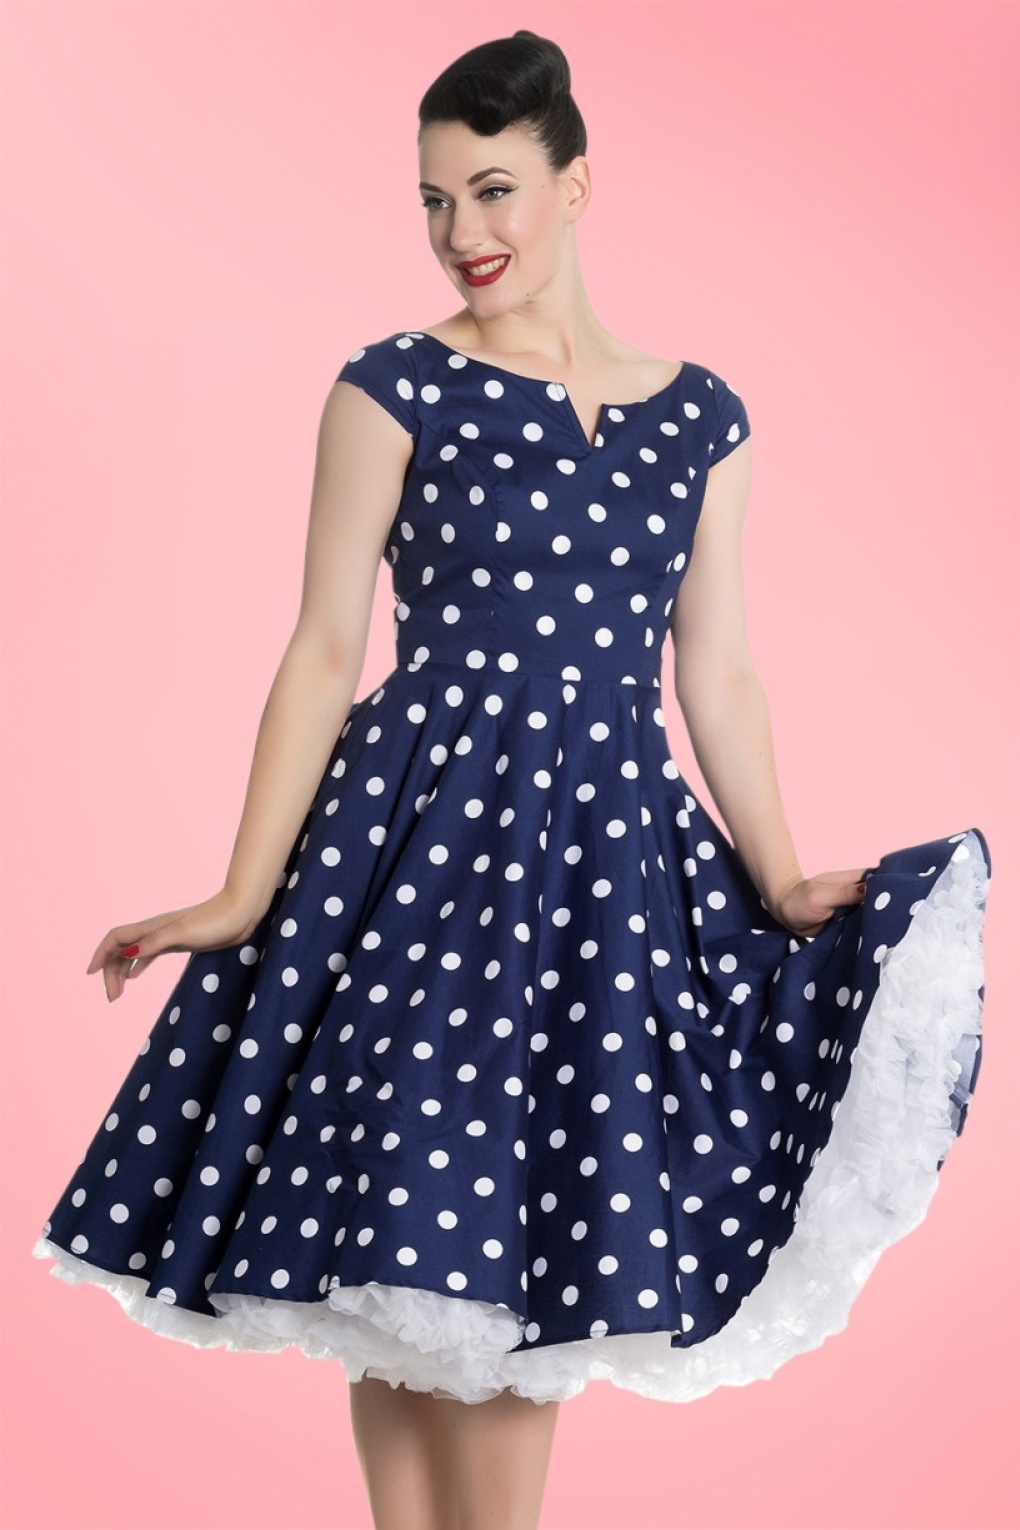 1940s Pinup Dresses for Sale 50s Nicky Polkadot Swing Dress in Navy and White £37.59 AT vintagedancer.com